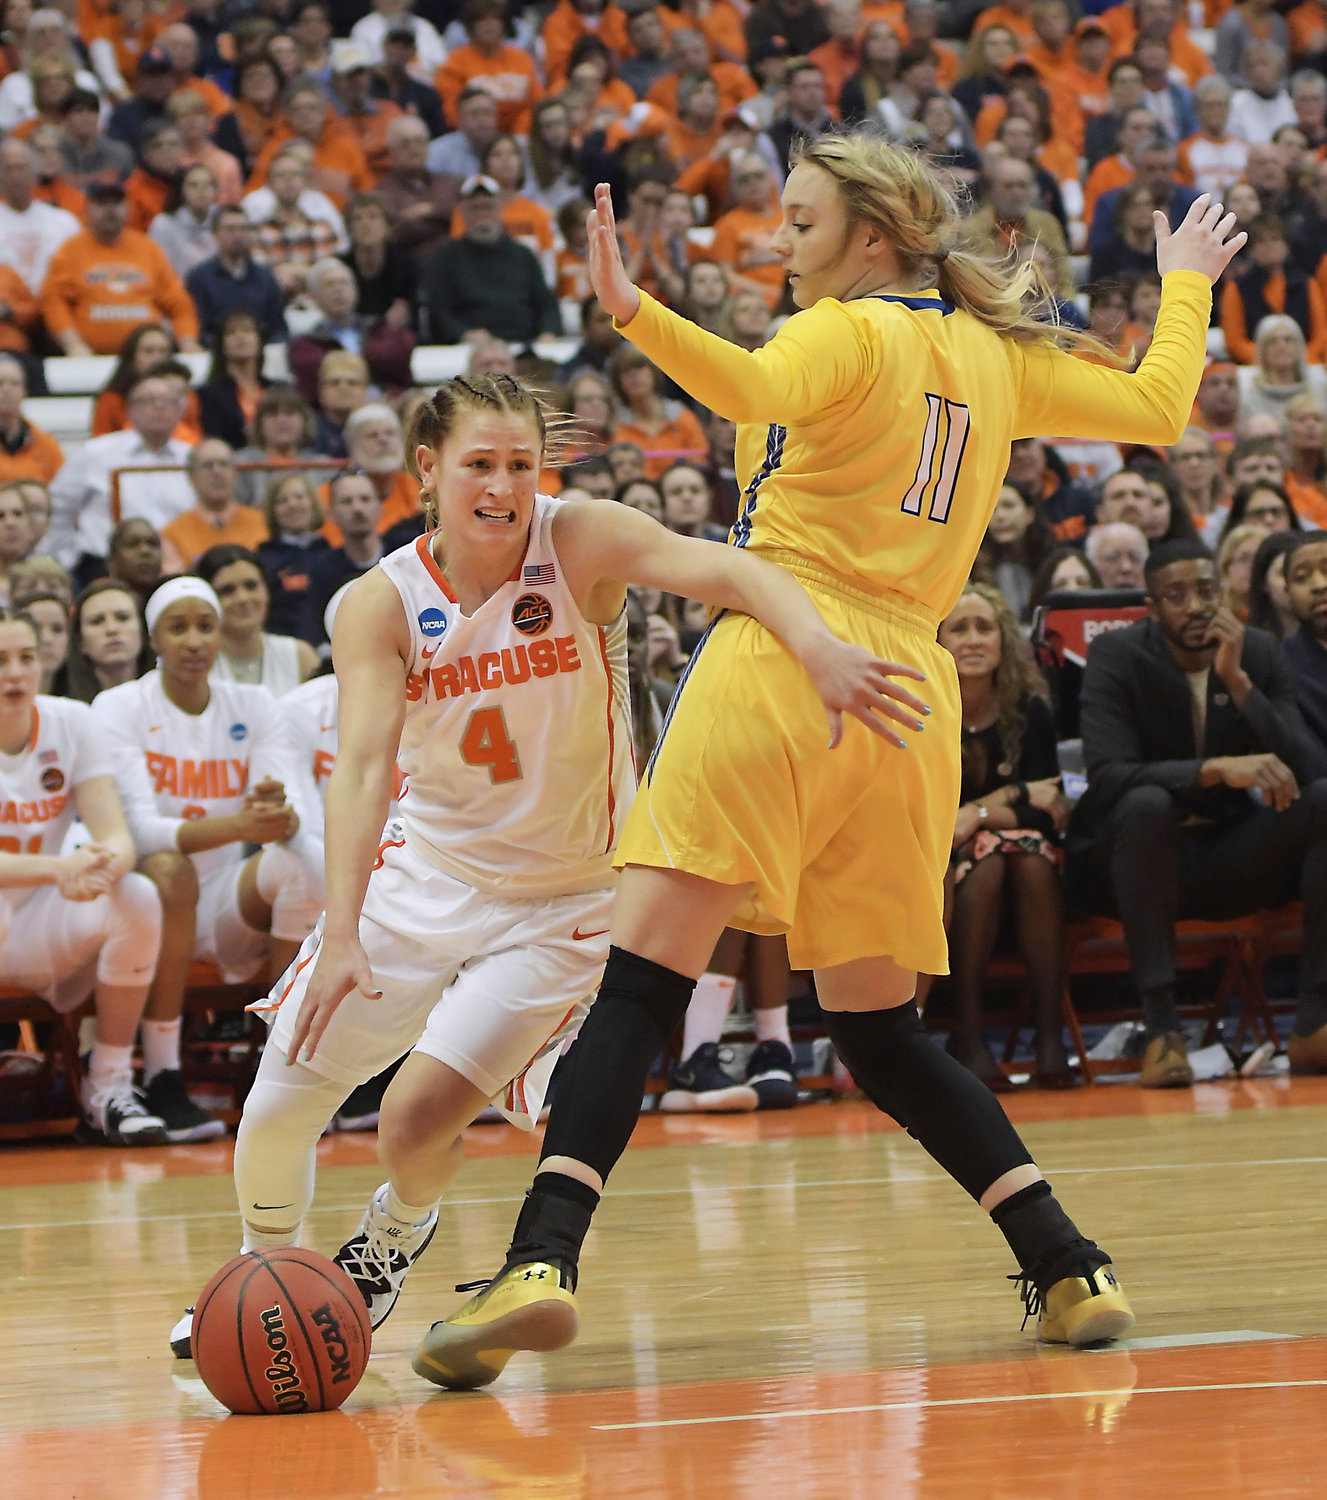 COMING BACK — Syracuse's Tiana Mangakahia, shown driving against South Dakota State's Madison Guebert during an NCAA Tournament second-round game on March 25, has announced that she will return for her final year of eligibility after considering making herself eligible for the 2019 WNBA draft.